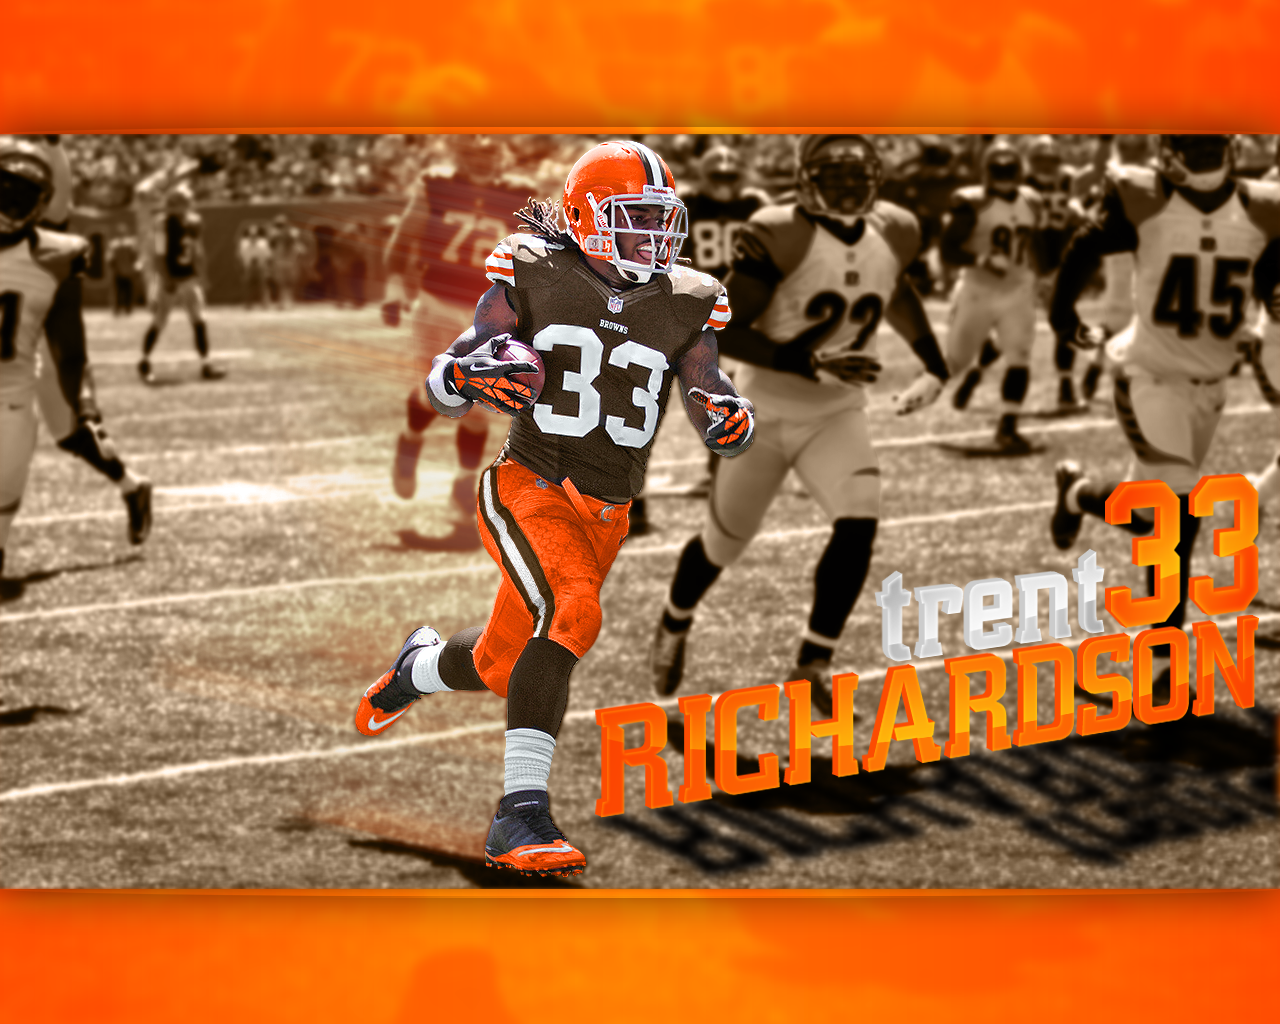 awards an cleveland browns screensaver pub cleveland screensavers 1280x1024